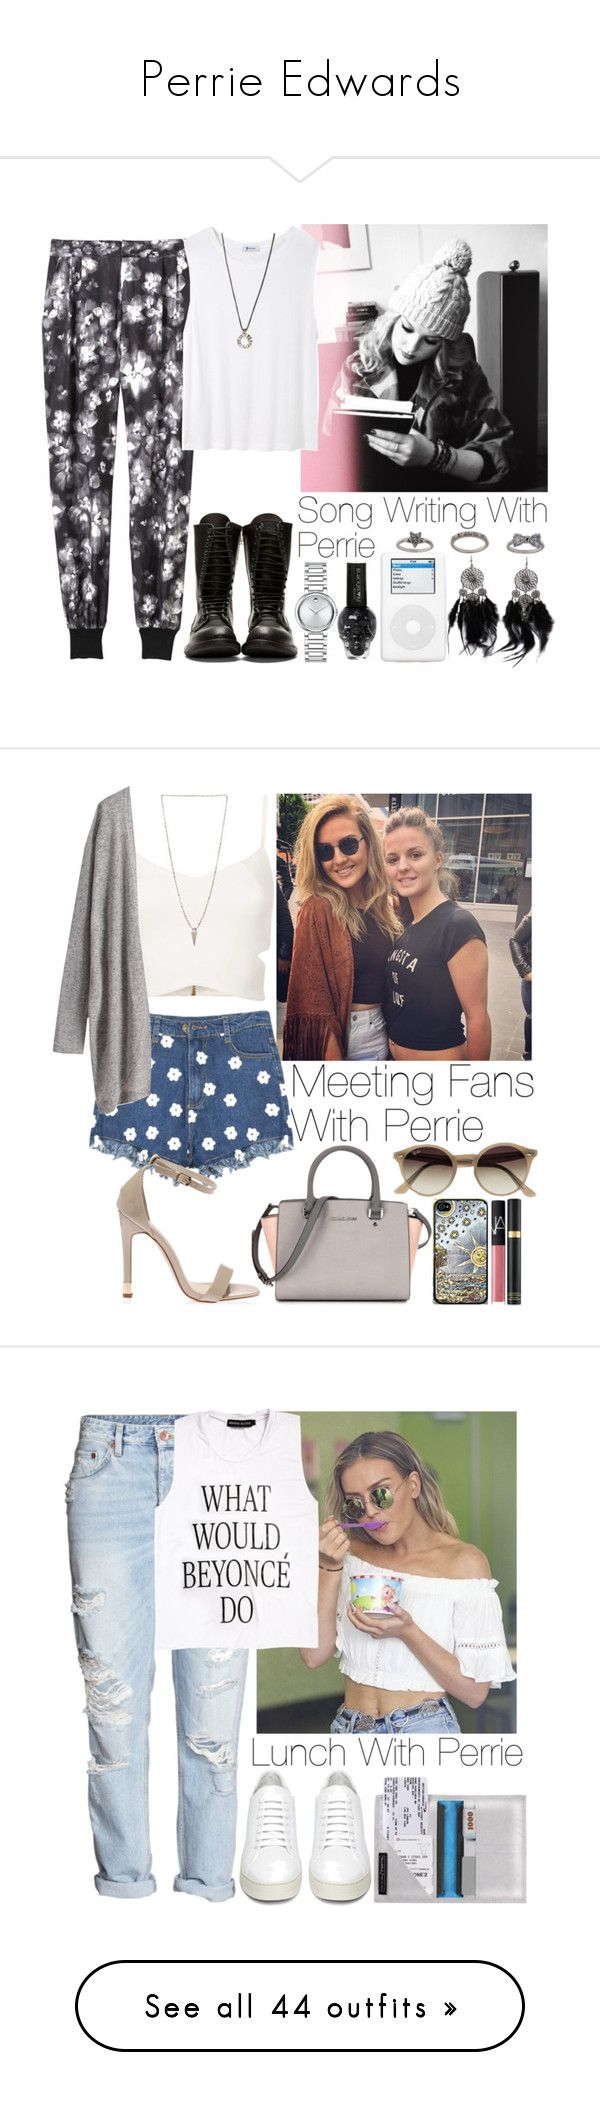 """""""Perrie Edwards"""" by beautifullyme1 ❤ liked on Polyvore featuring Rebecca Taylor, T By Alexander Wang, Rick Owens, Friis & Company, Miss Selfridge, littlemix, perrieedwards, perrieedwardsstyle, Mixer and Topshop"""